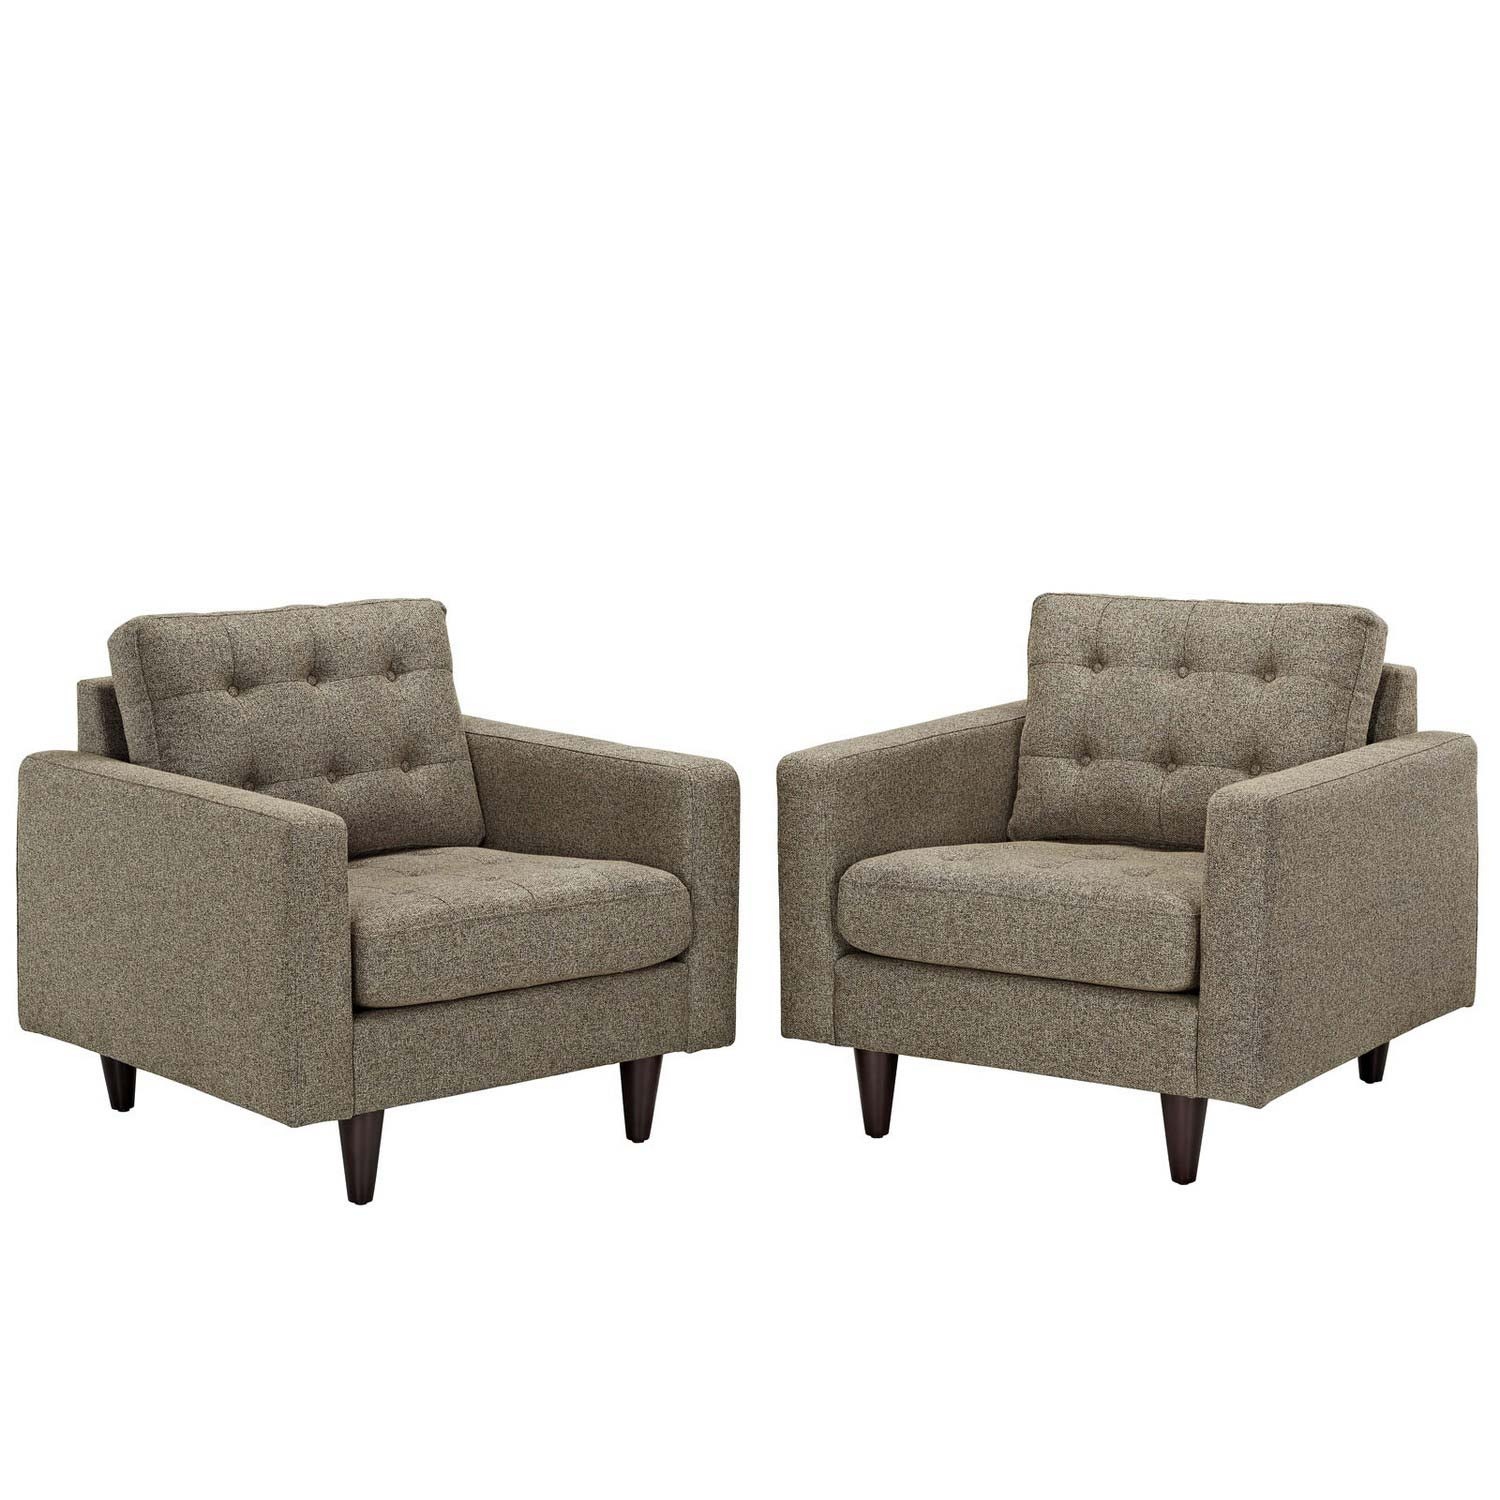 Modway Empress Armchair Upholstered Set of 2 - Oatmeal